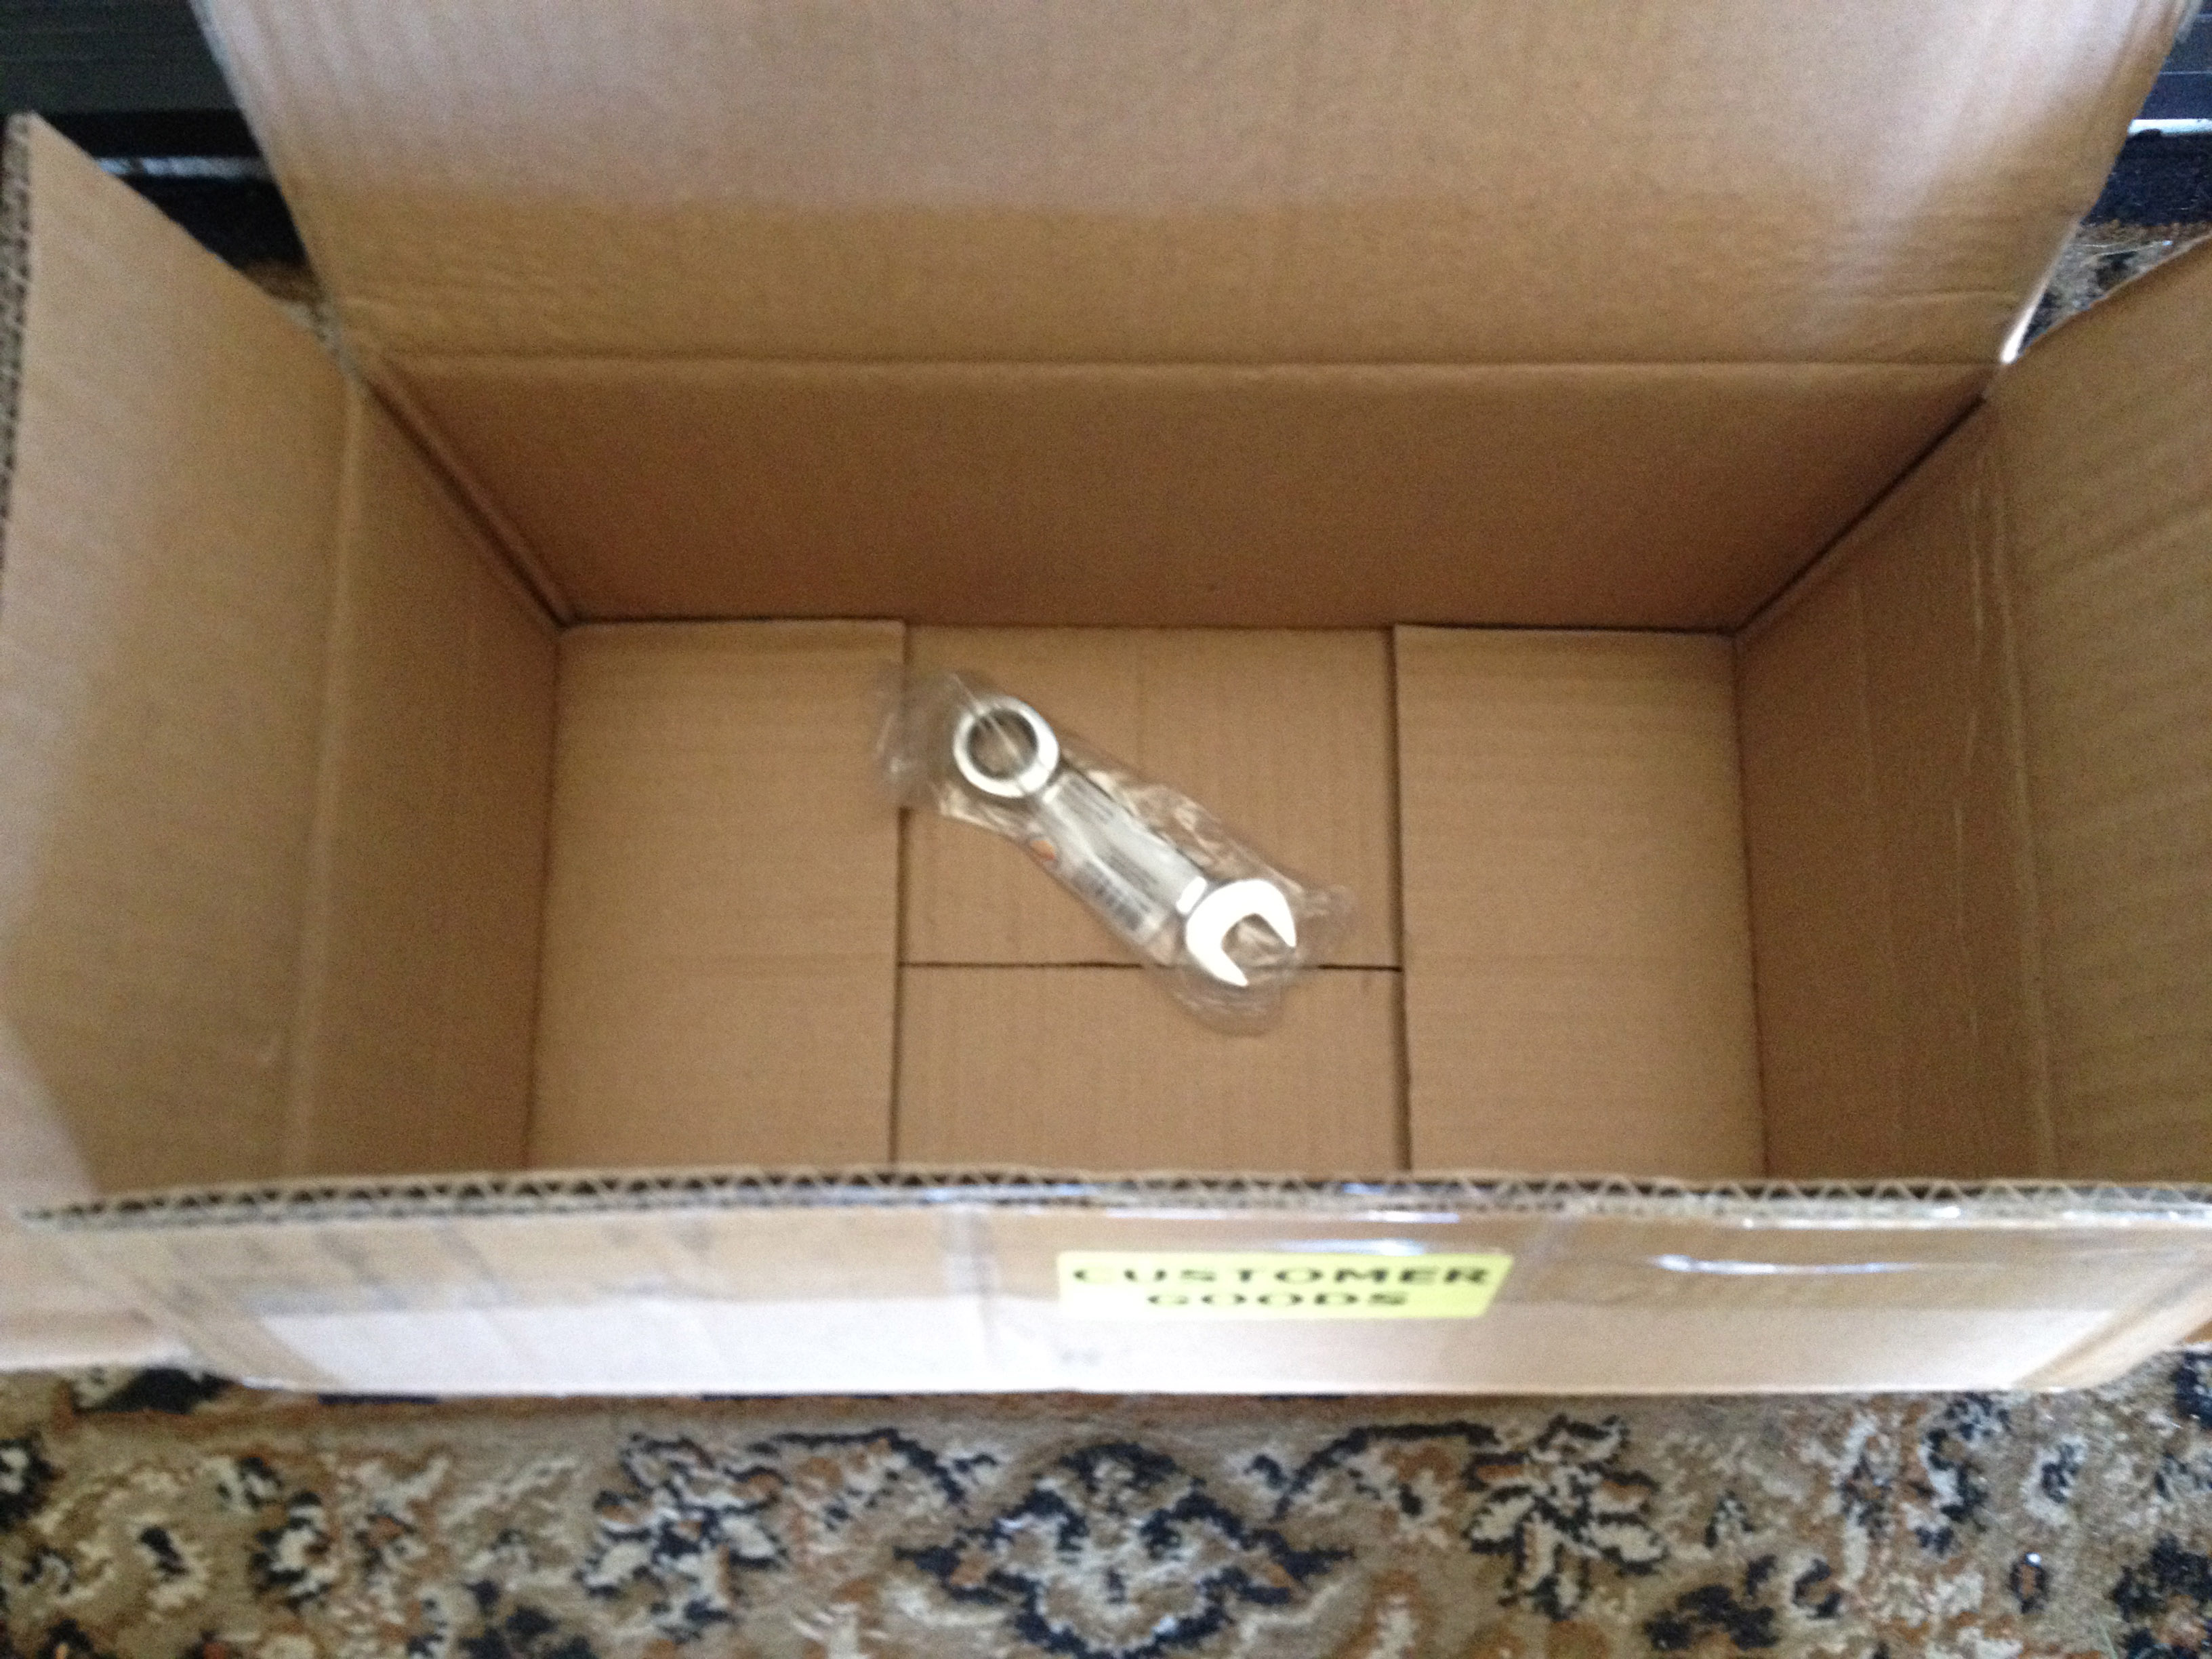 Sears Ships Tiny Wrench To Store In Giant Box